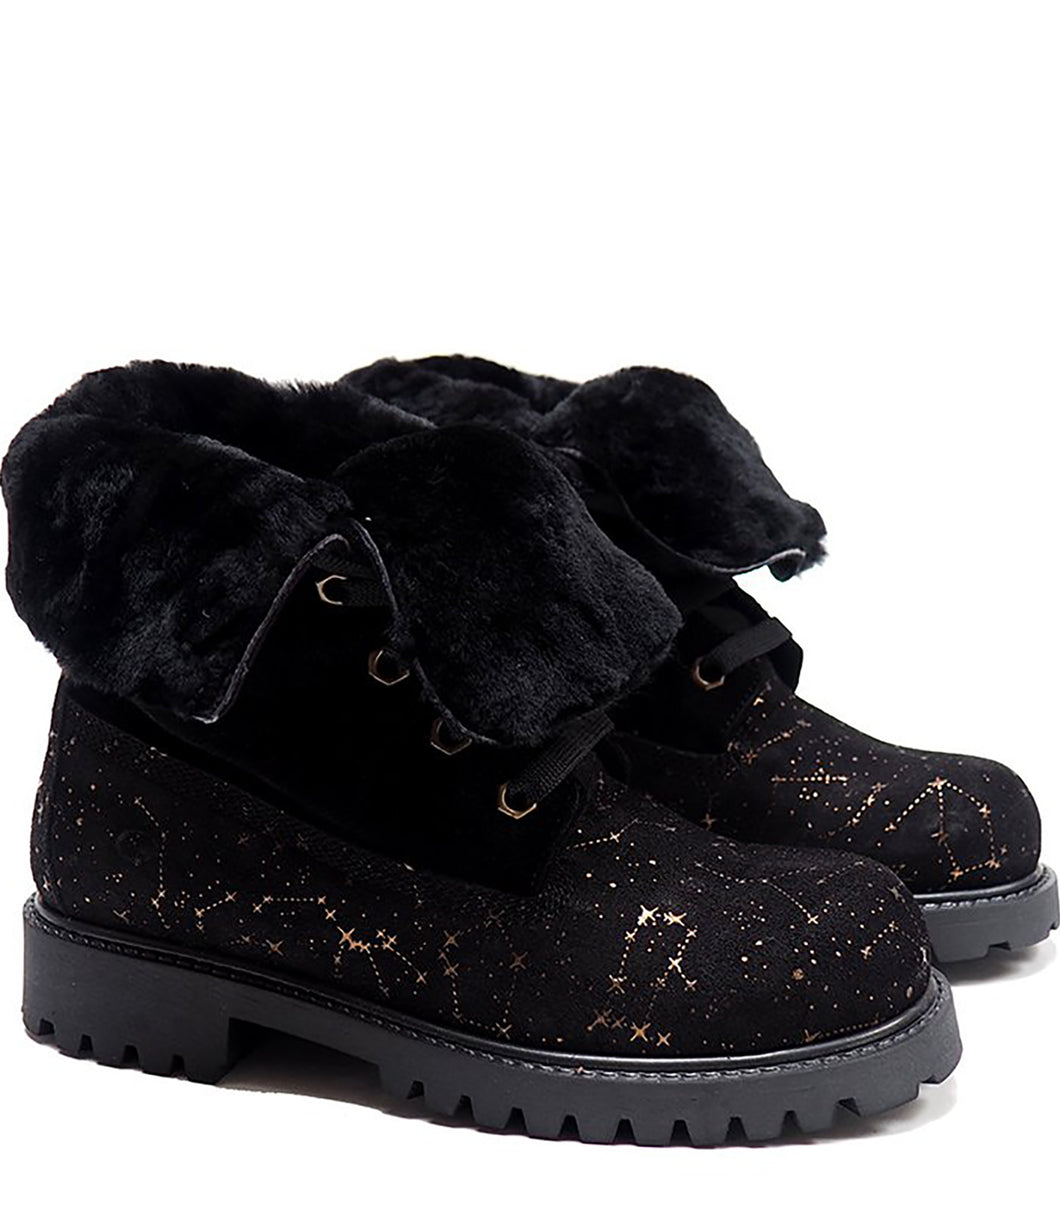 Boots in black suede with galattical effect and shearling